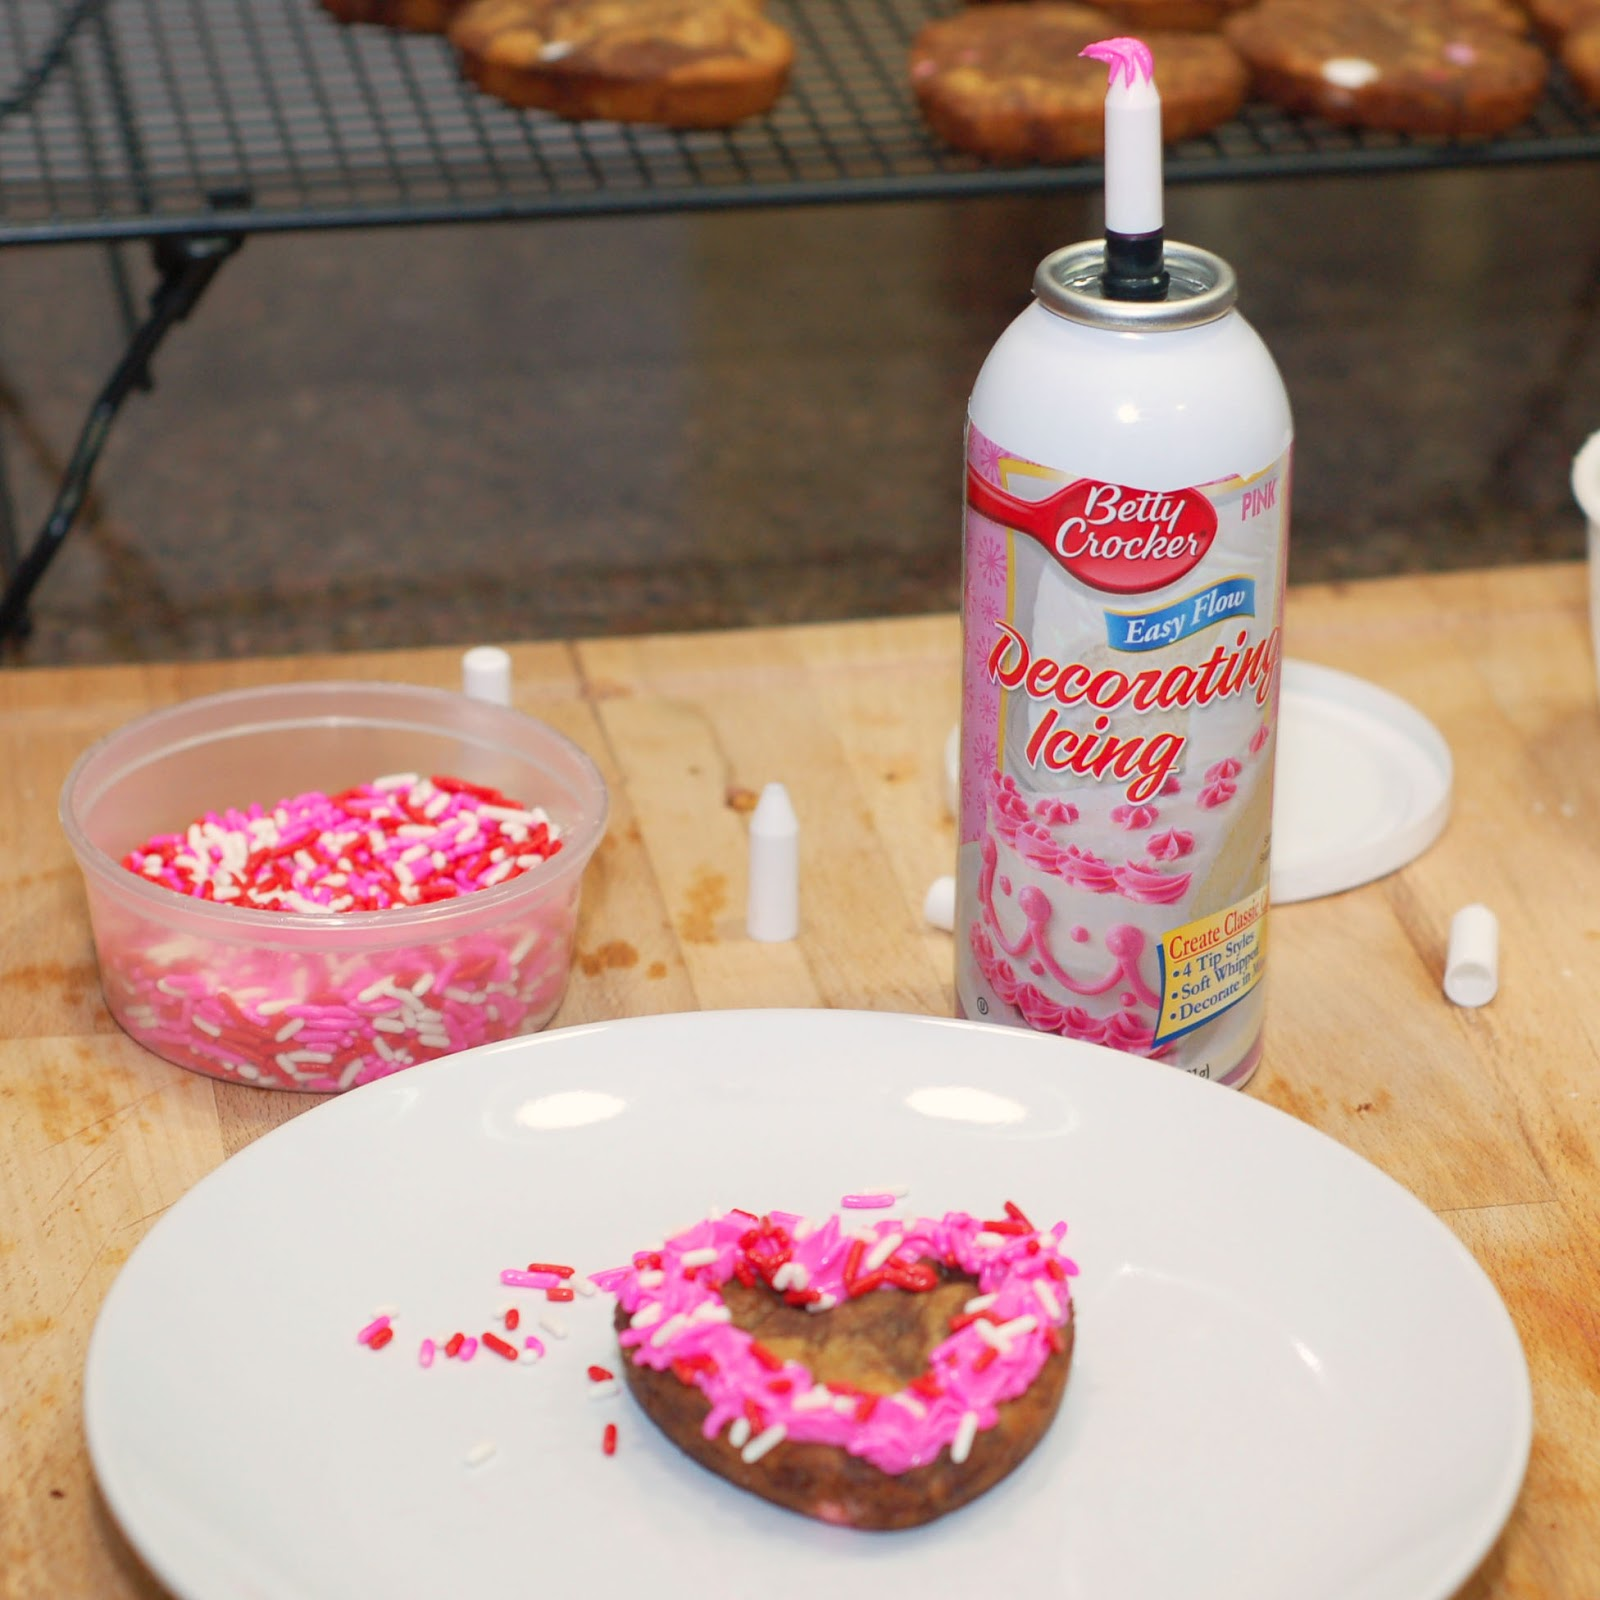 Emejing Betty Crocker Decorating Icing Ideas ...